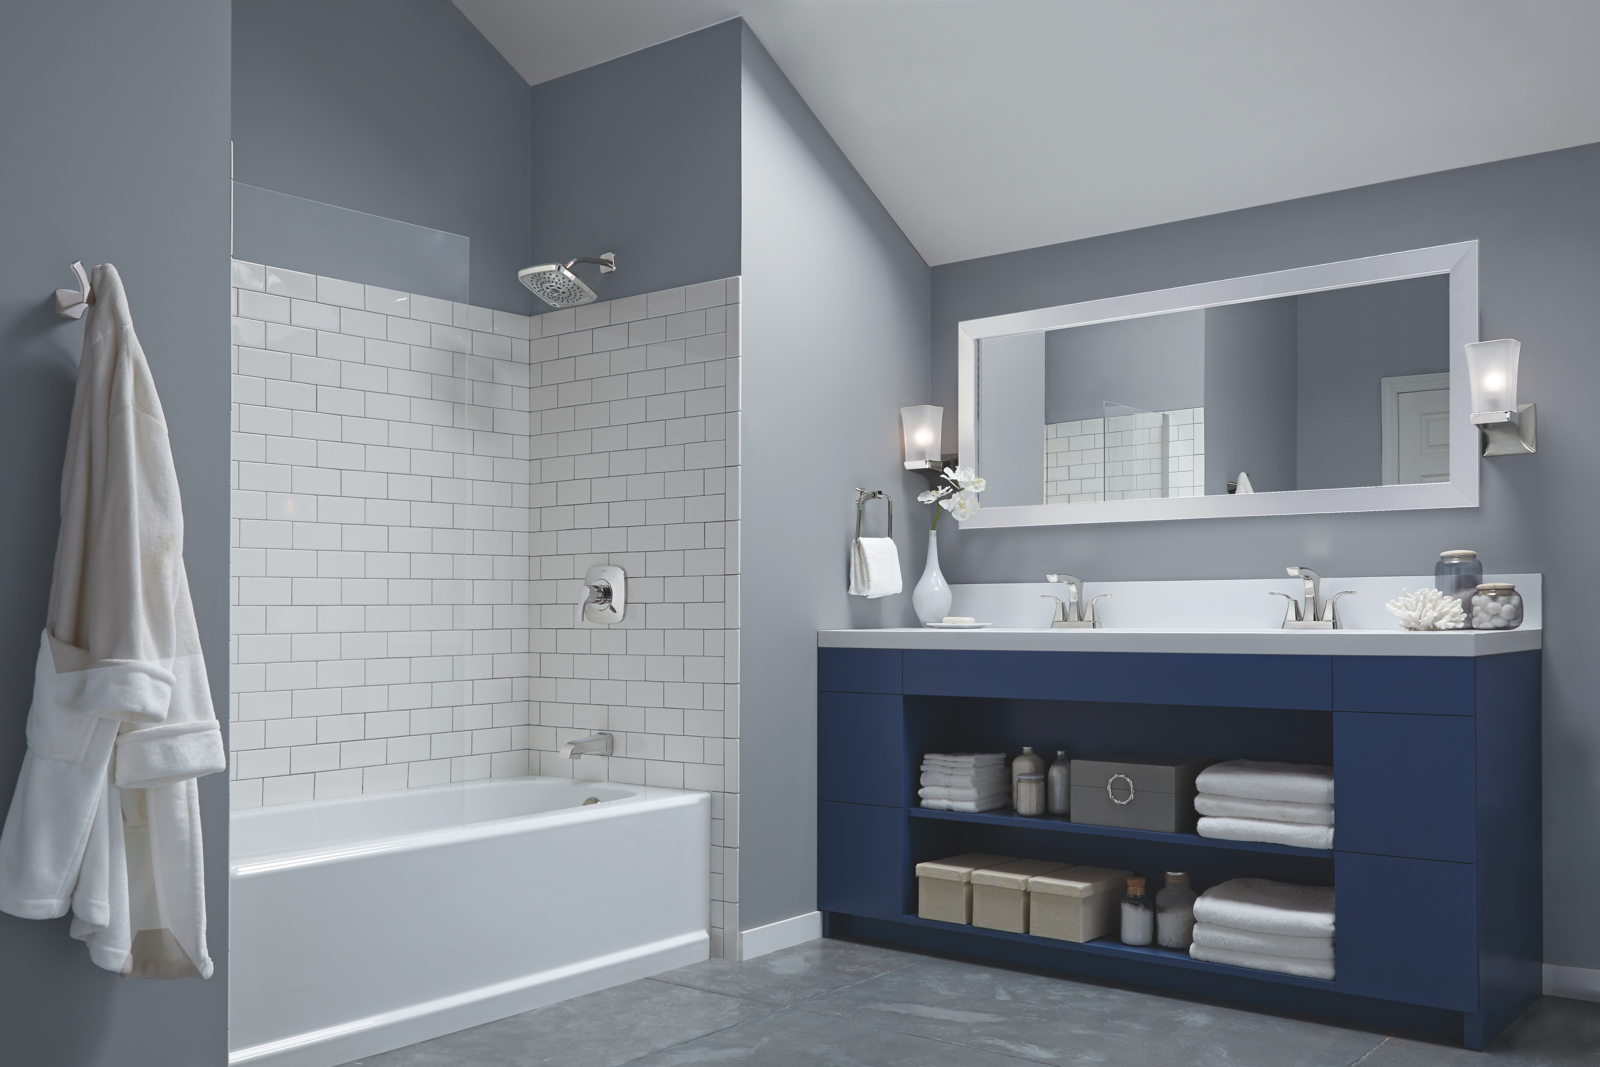 Bathroom with grey painted walls and an alcove tub and shower accented with white subway tiles.